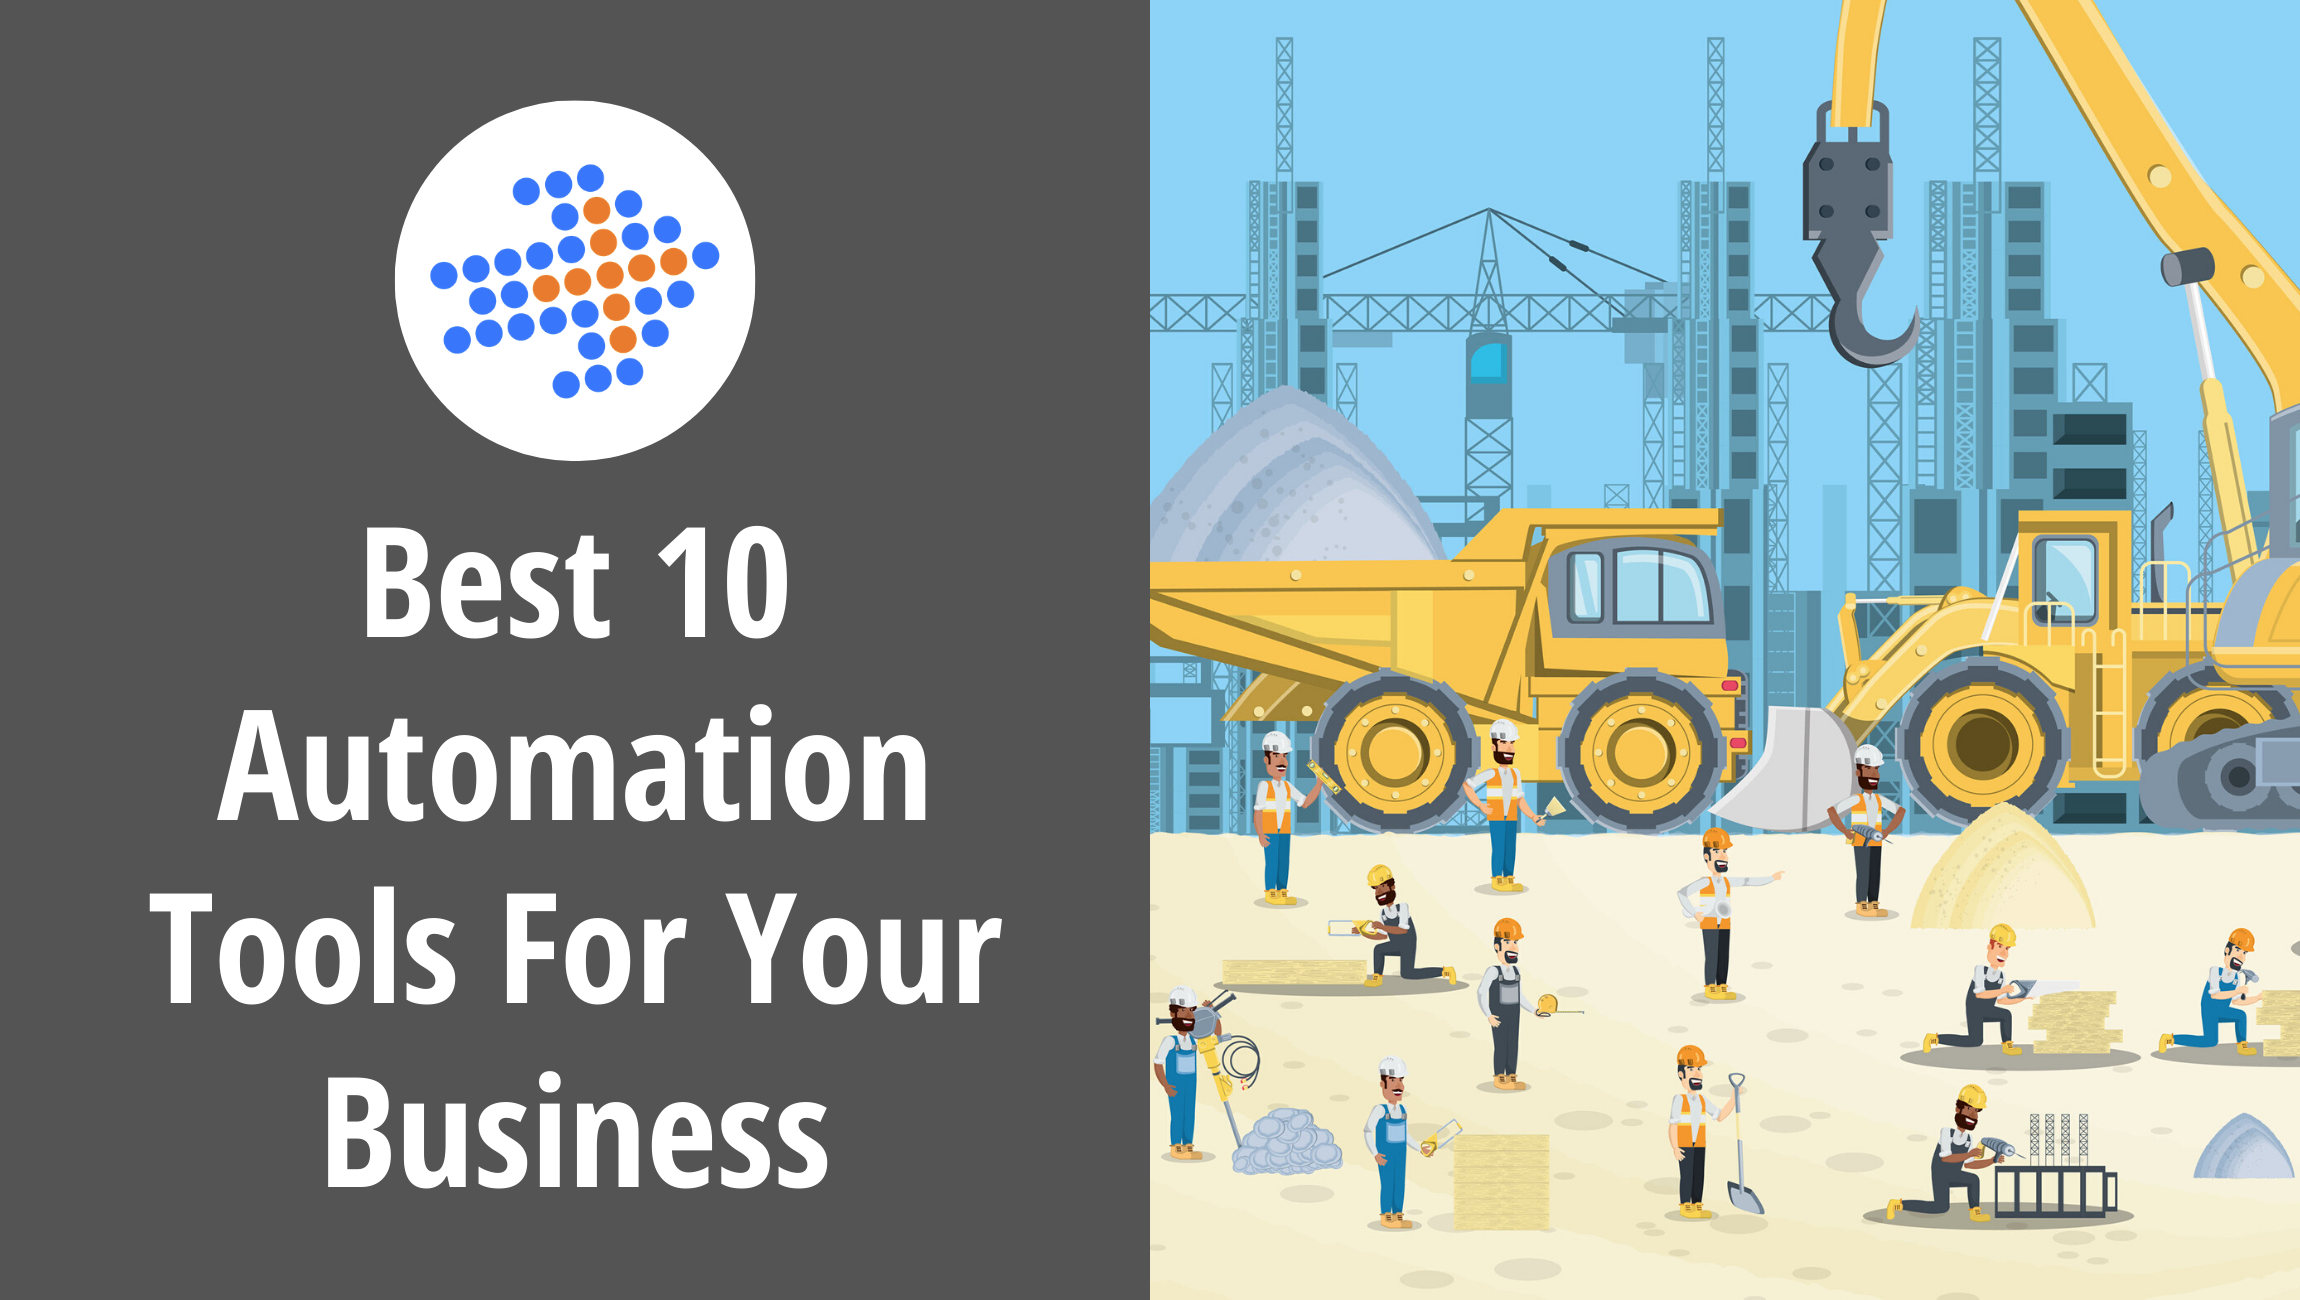 Best 10 Automation Tools For Your Business